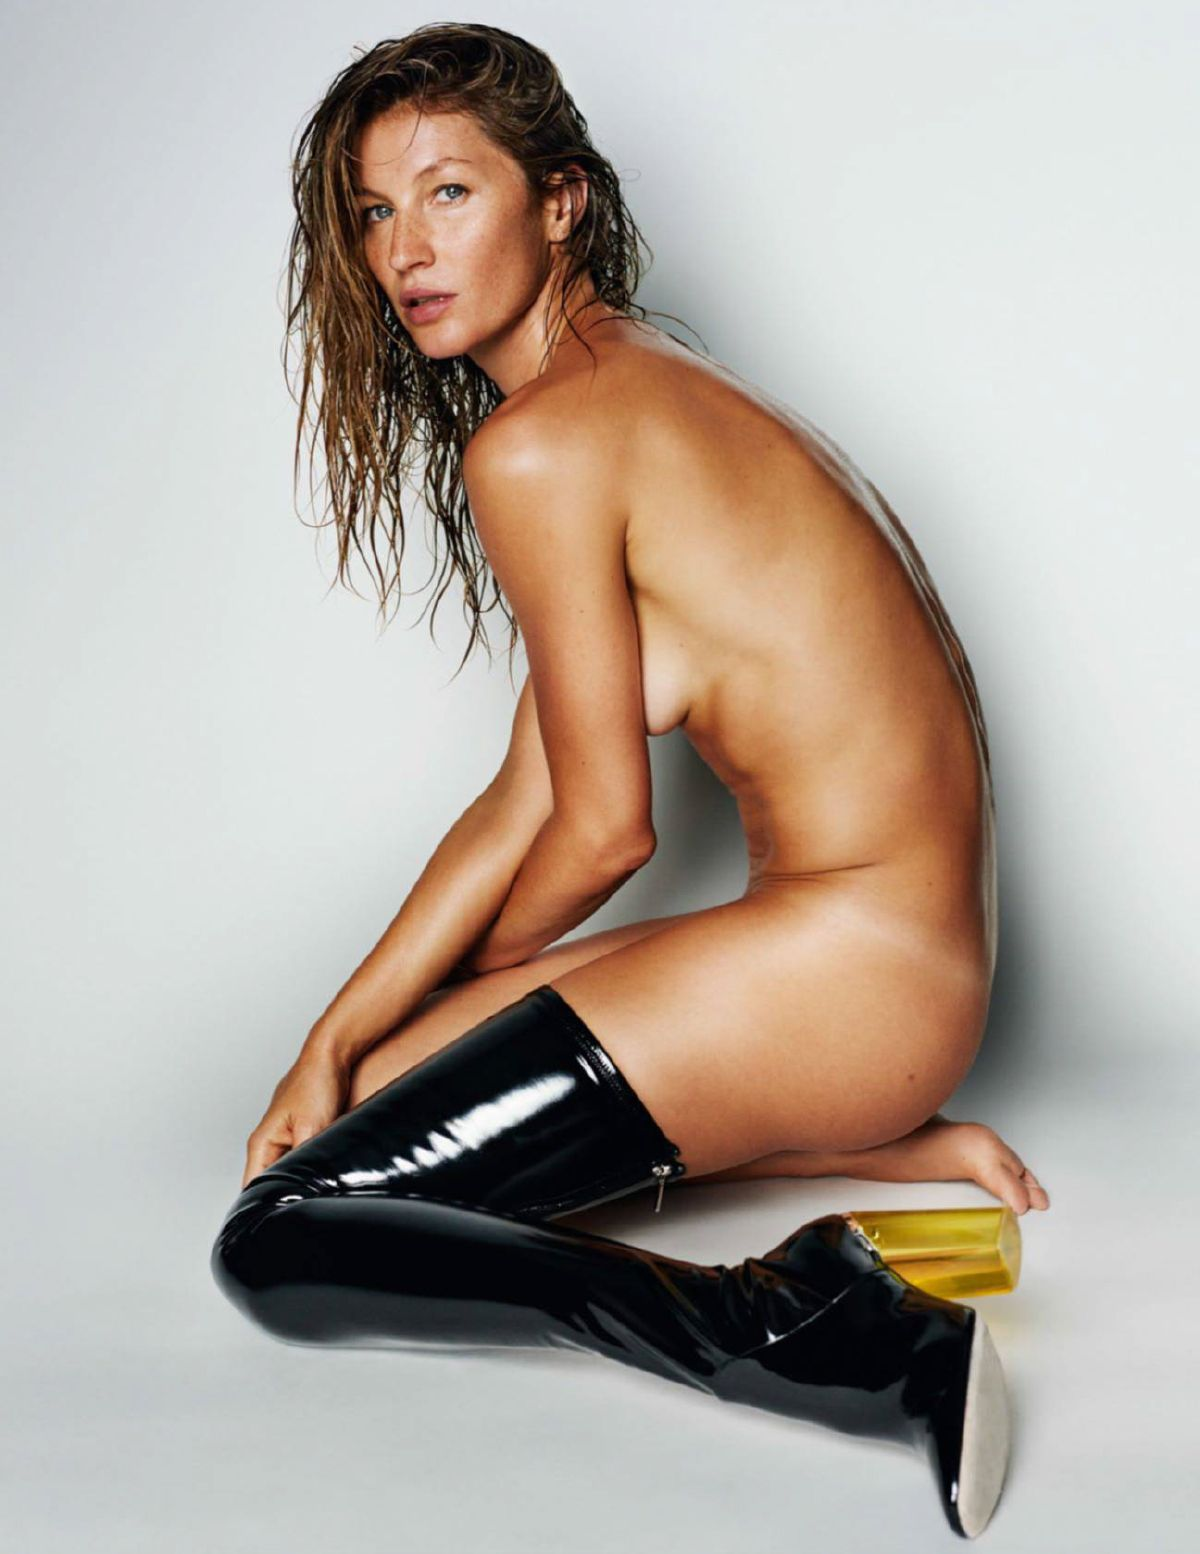 Question gisele bundchen showing her pussy